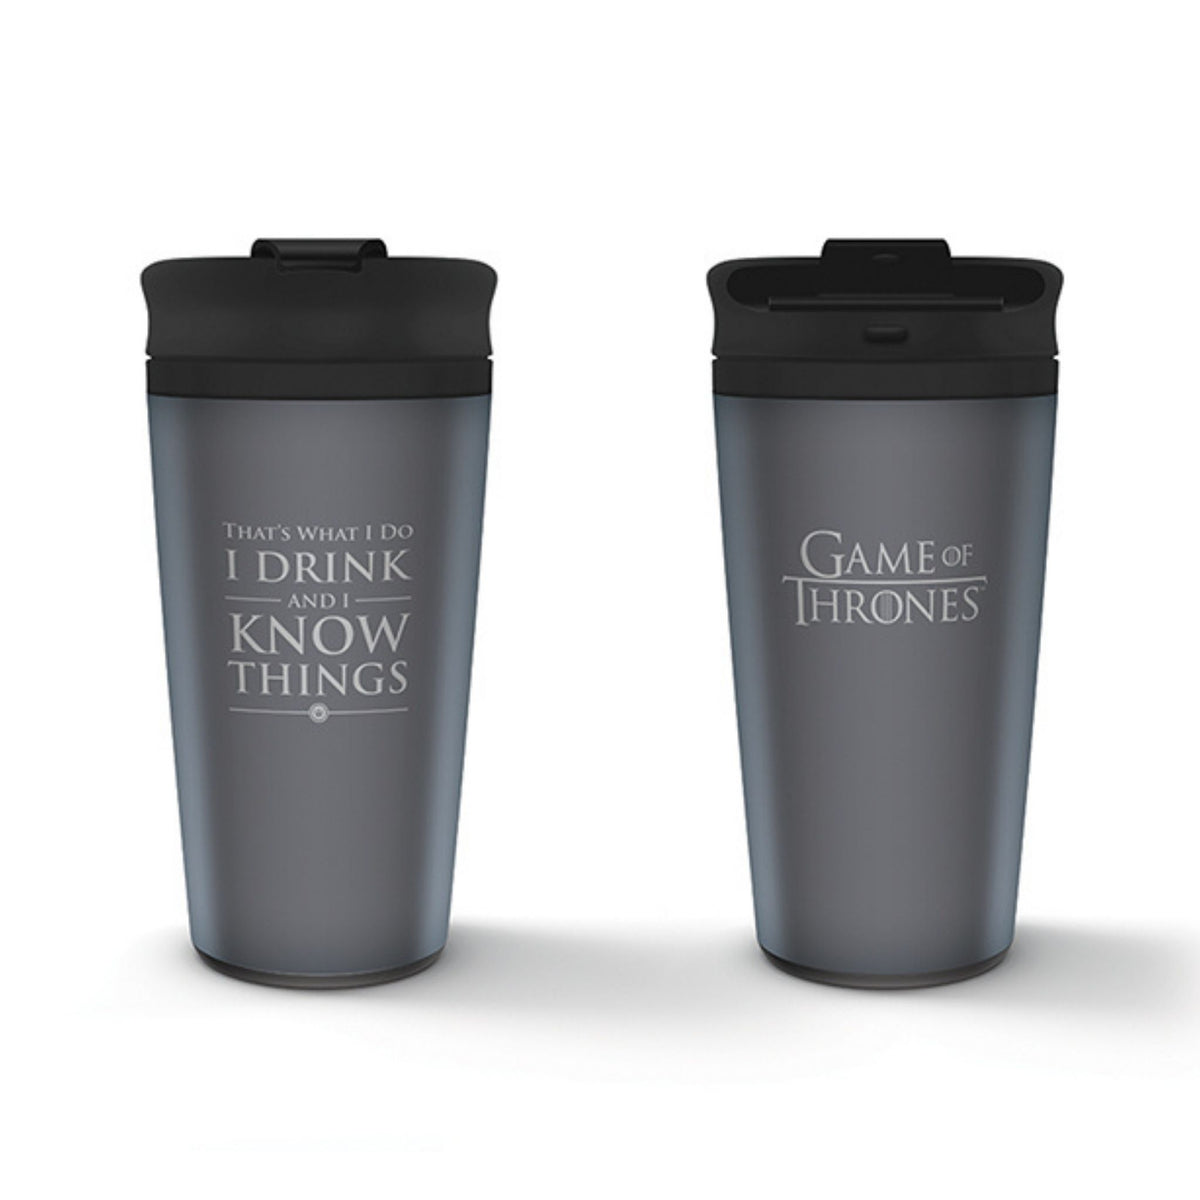 Game of Thrones Metal Travel Mug – I Drink and I Know Things